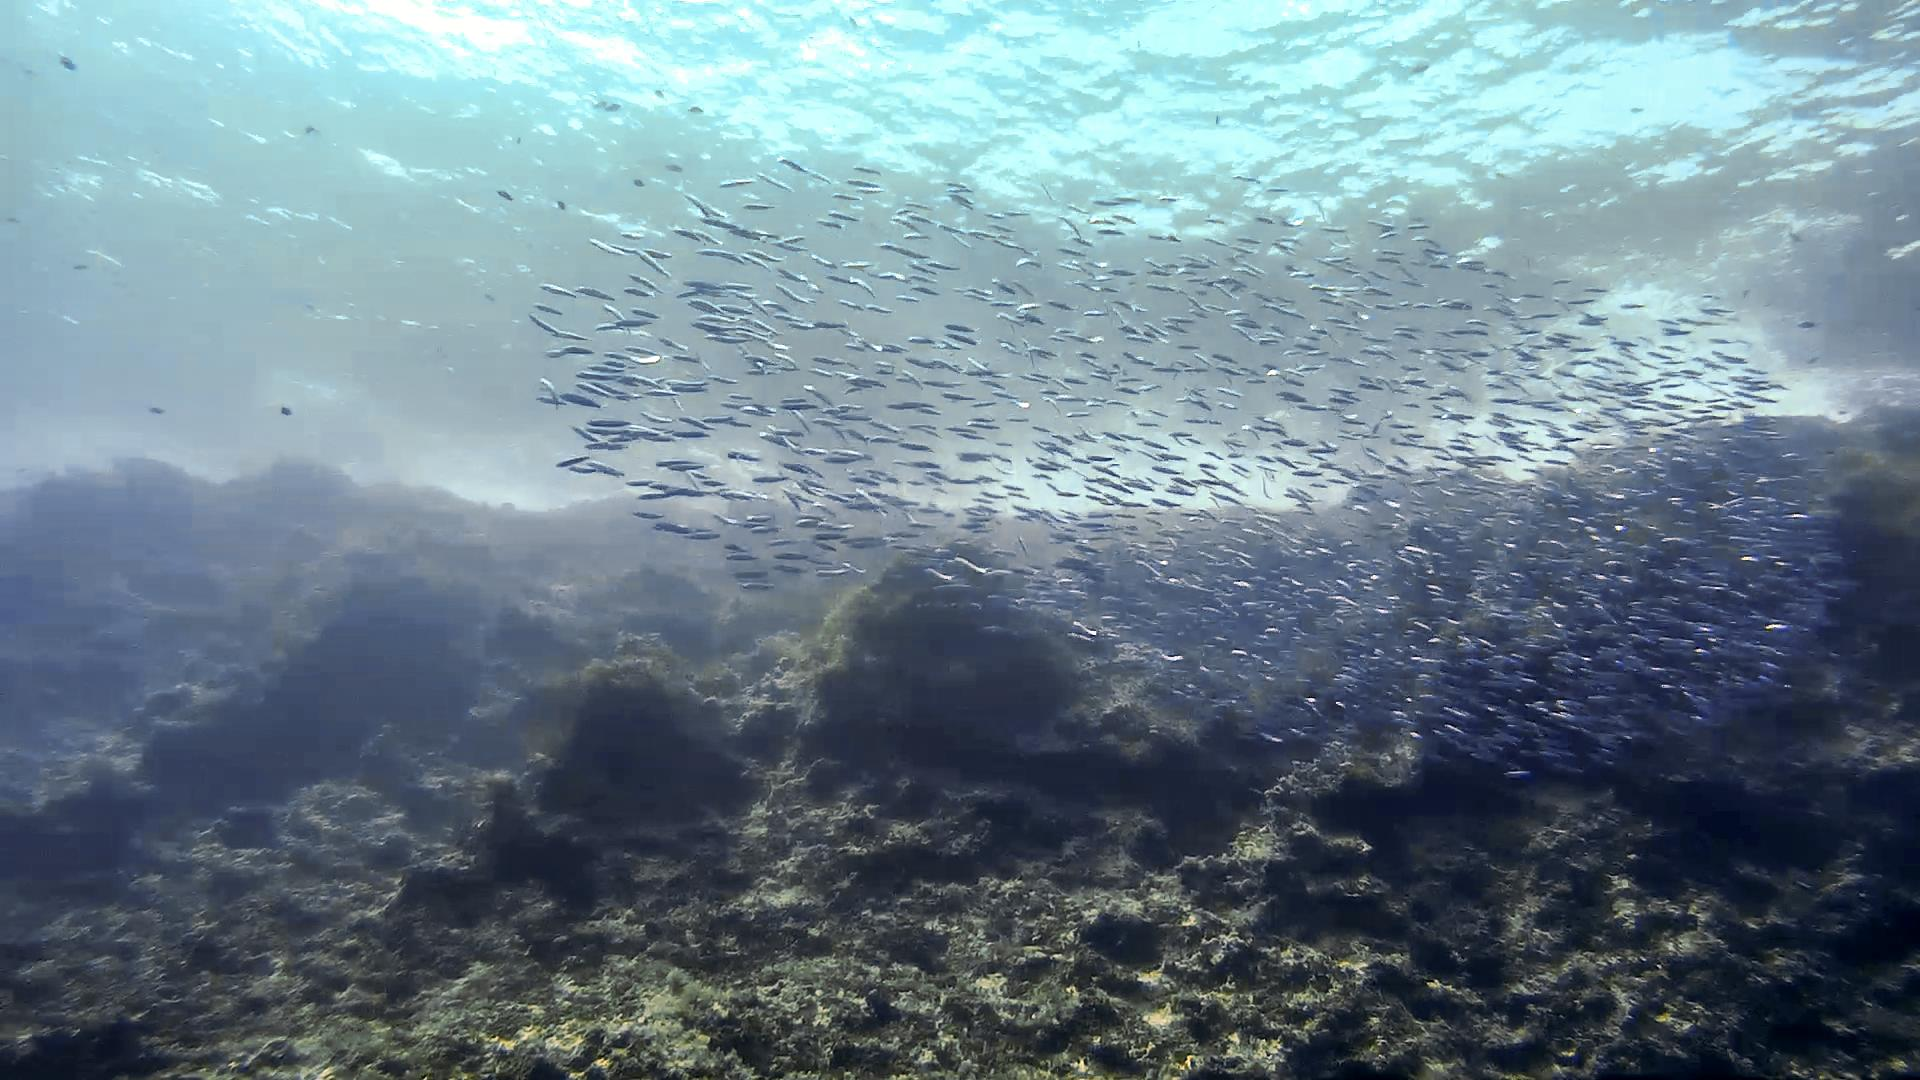 Large shoal of fish